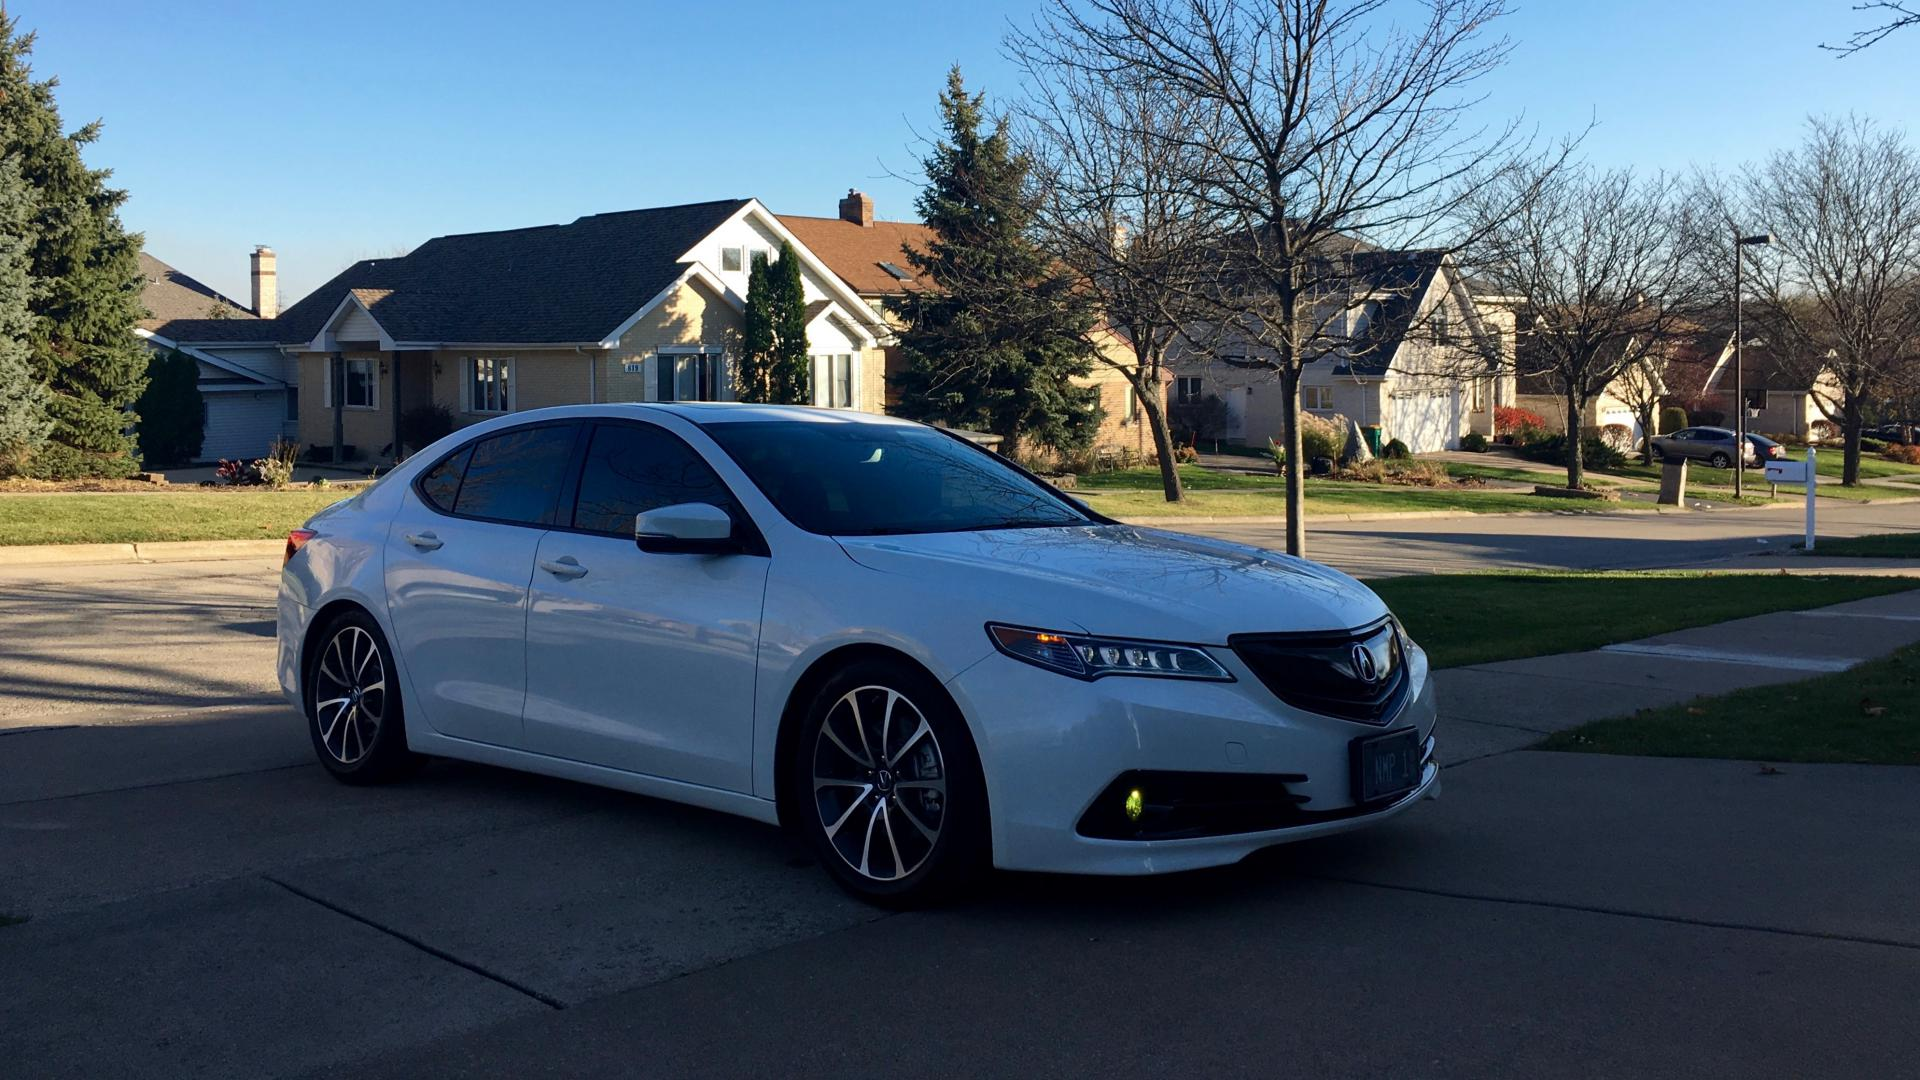 Show Us Your Wheels Page Acura TLX Forum - 2018 acura tl 19 inch wheels